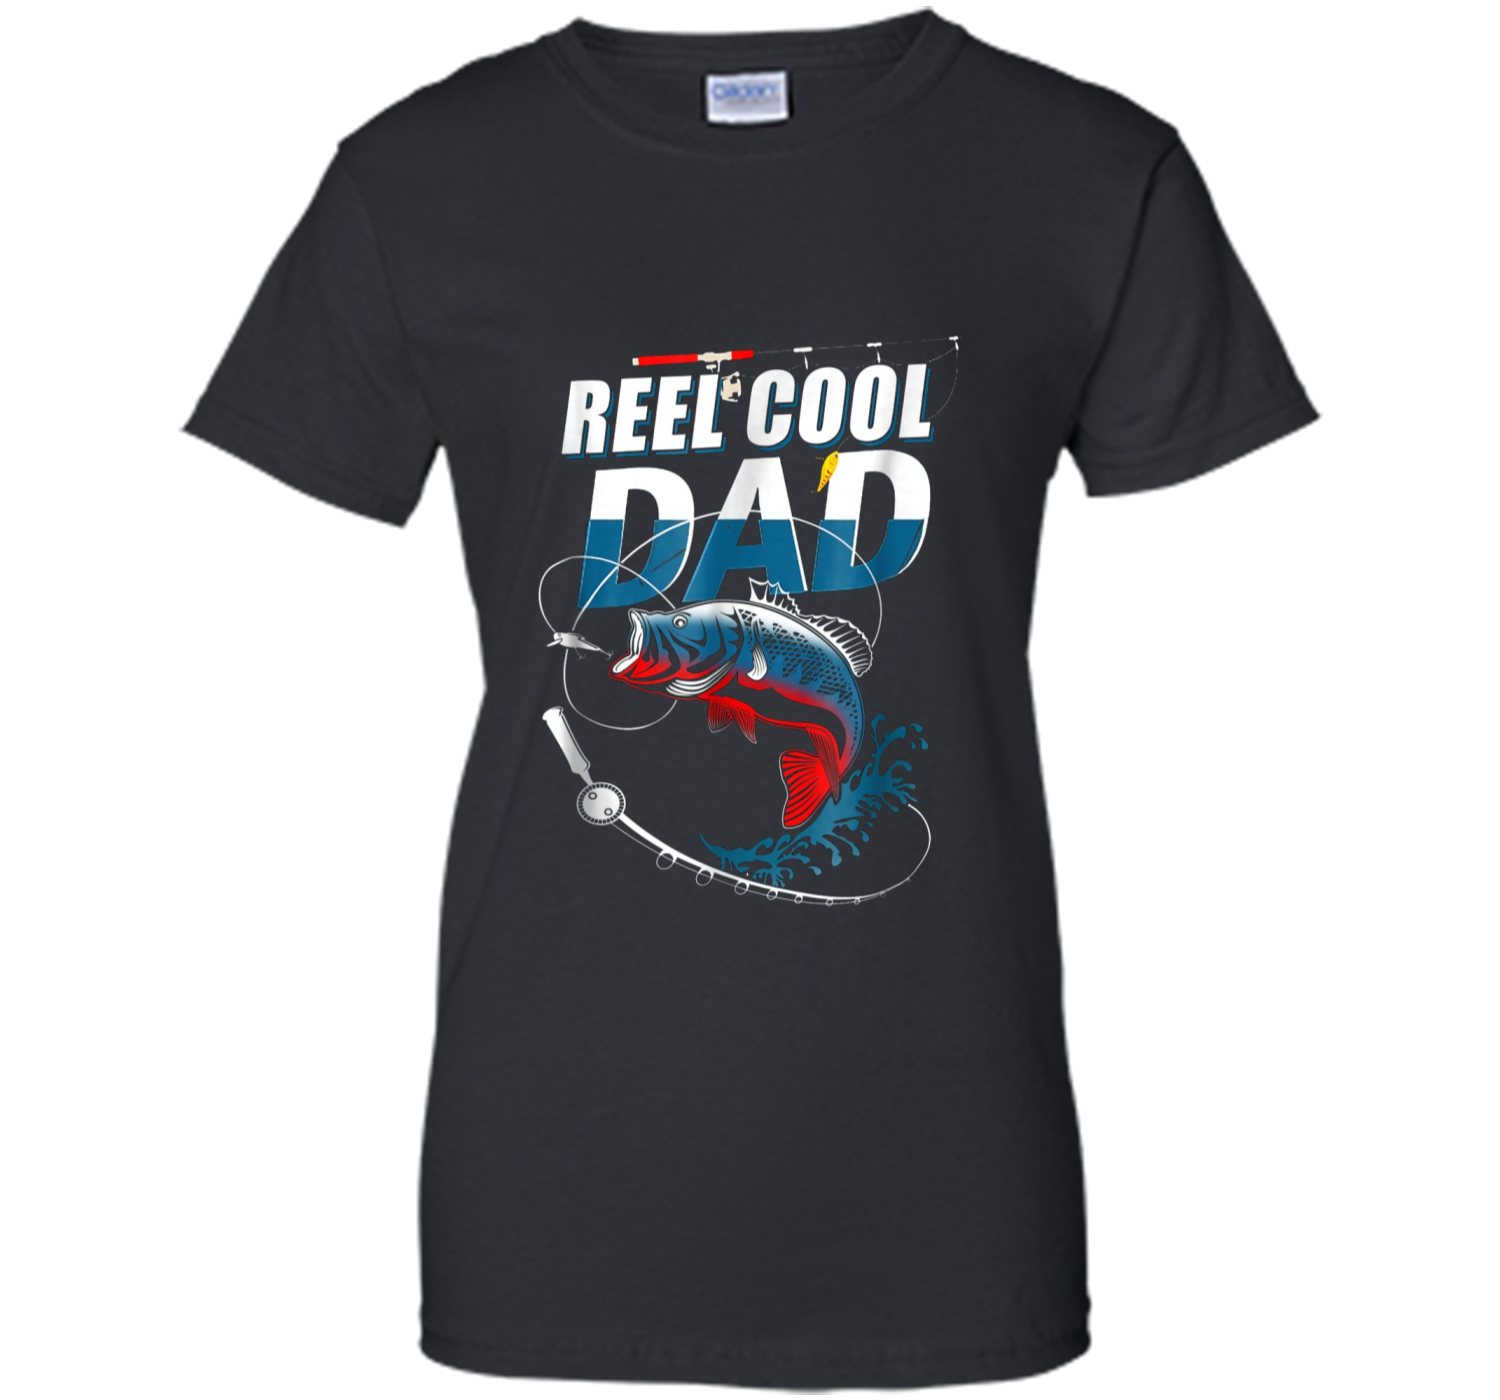 18148c22d Mens Reel Cool Dad T-Shirt Fishing Daddy Father's Day Gift S Ladies ...